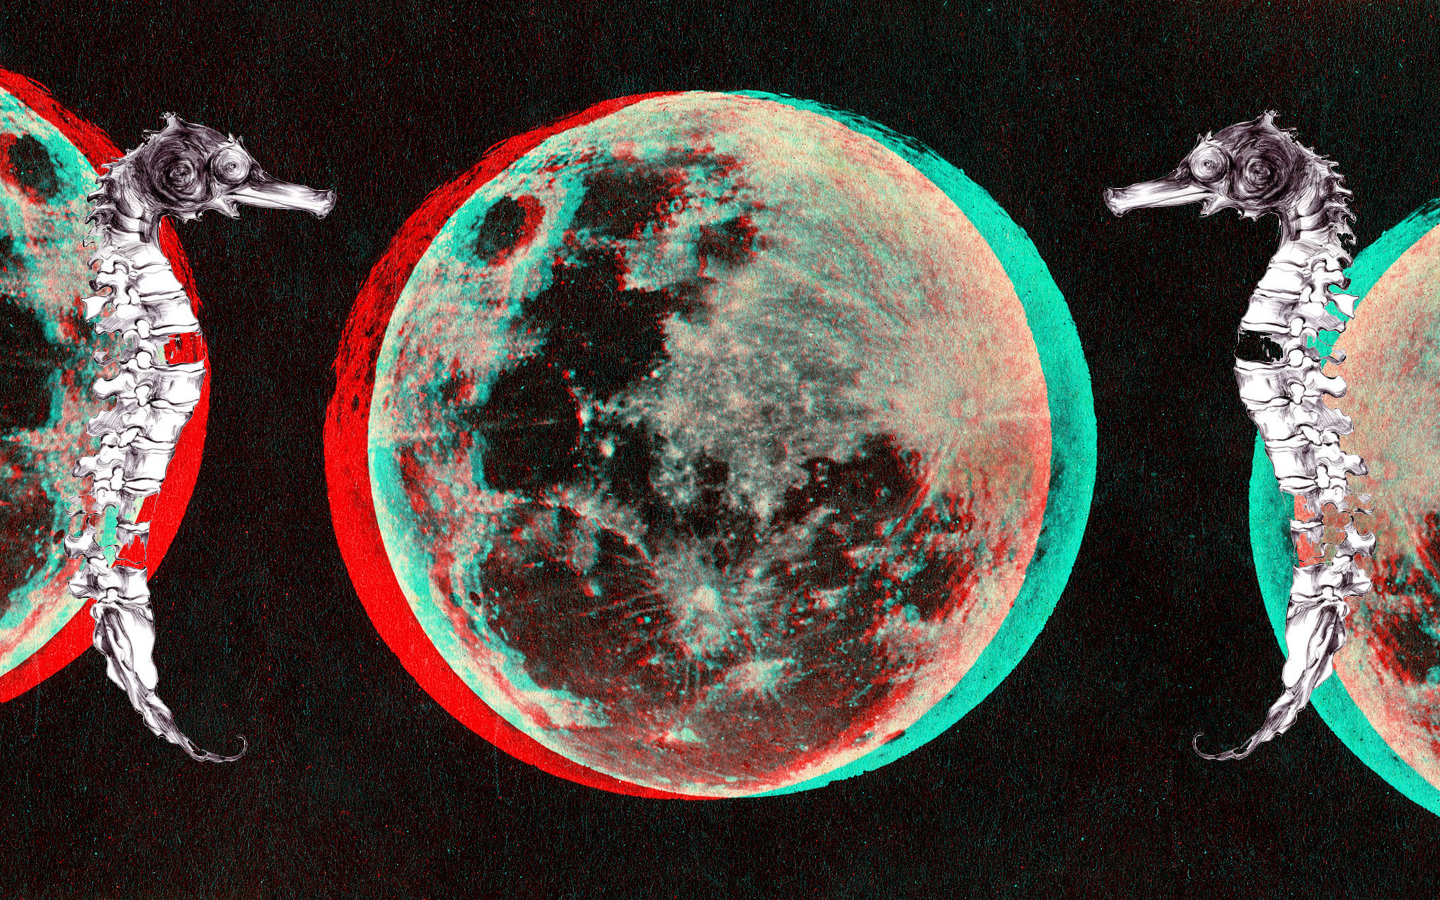 pictures anaglyph 3d wallpaper 1024x768 anaglyph 3d Car Pictures 1440x900